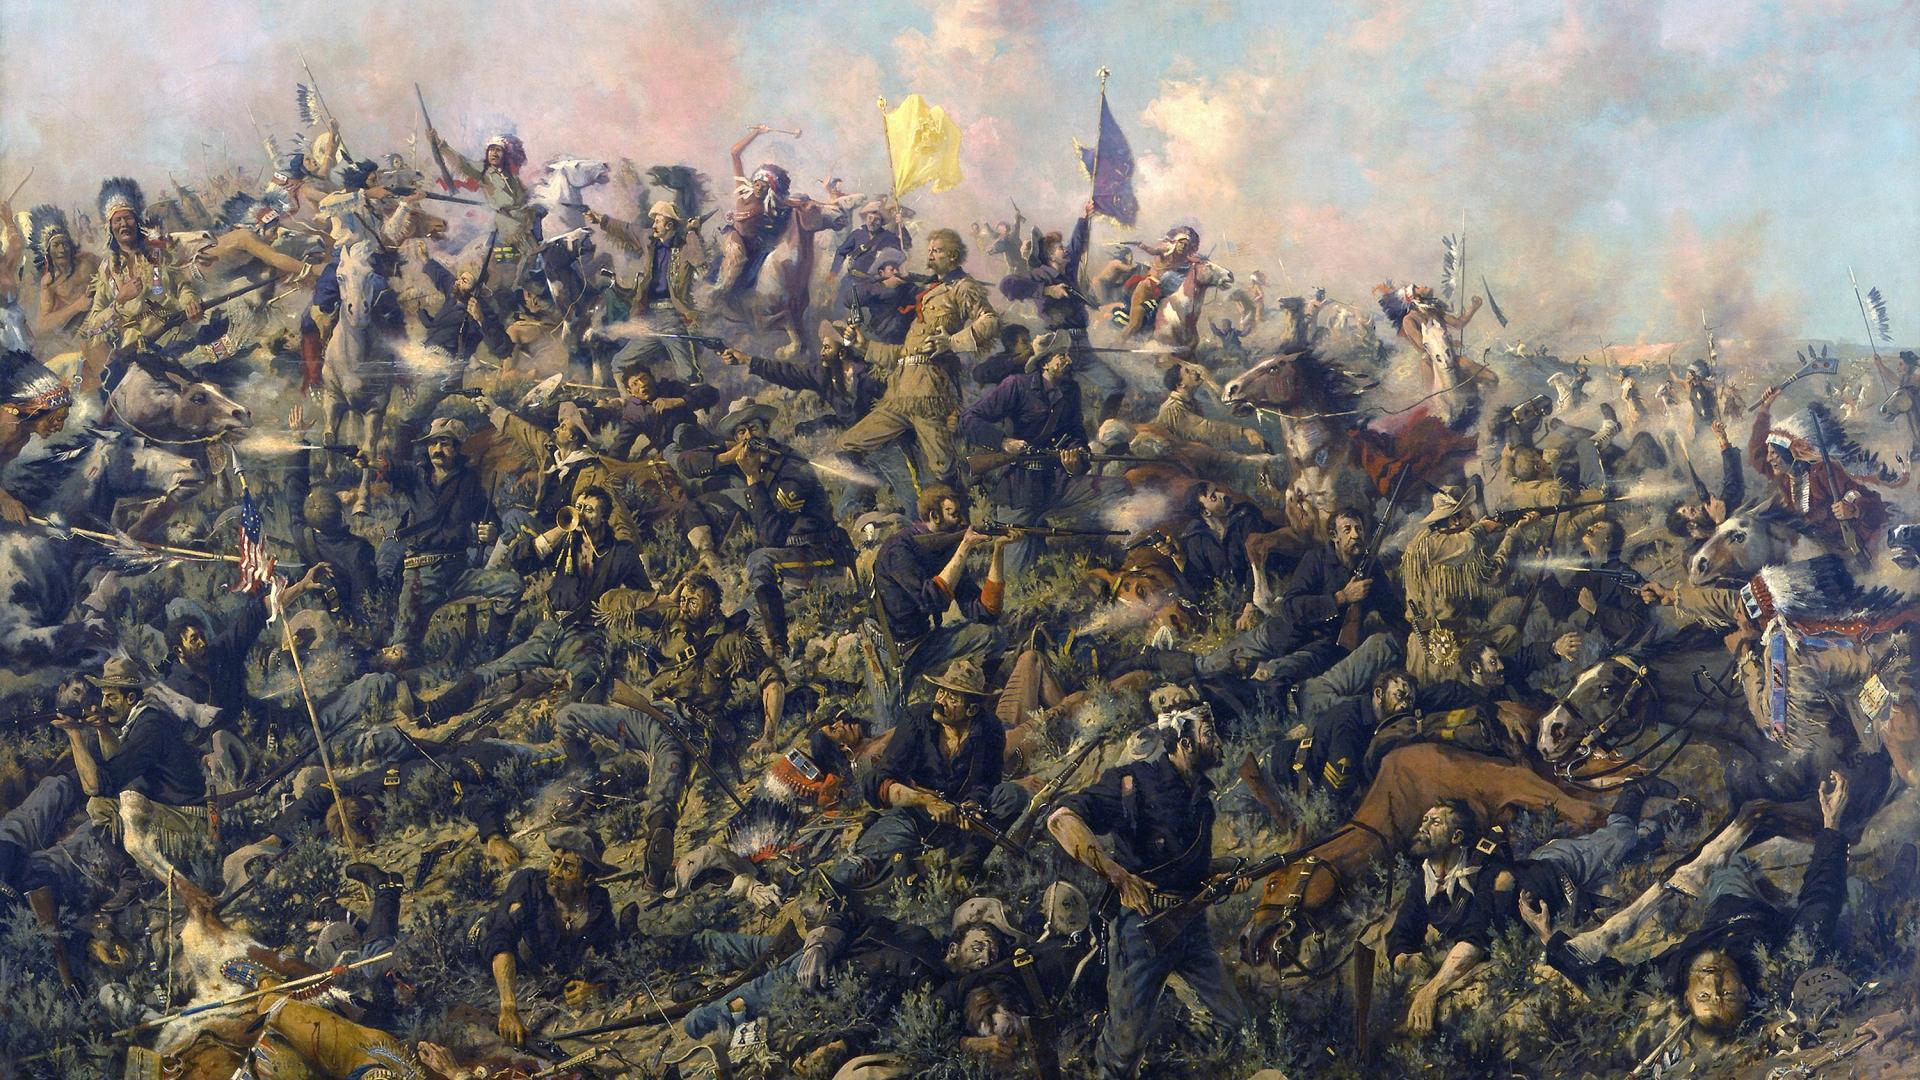 Custer's Last Stand from the Battle of Little Bighorn. Painted by Edgar Samuel Paxson, 1899. (Credit: GraphicaArtis/Getty Images)